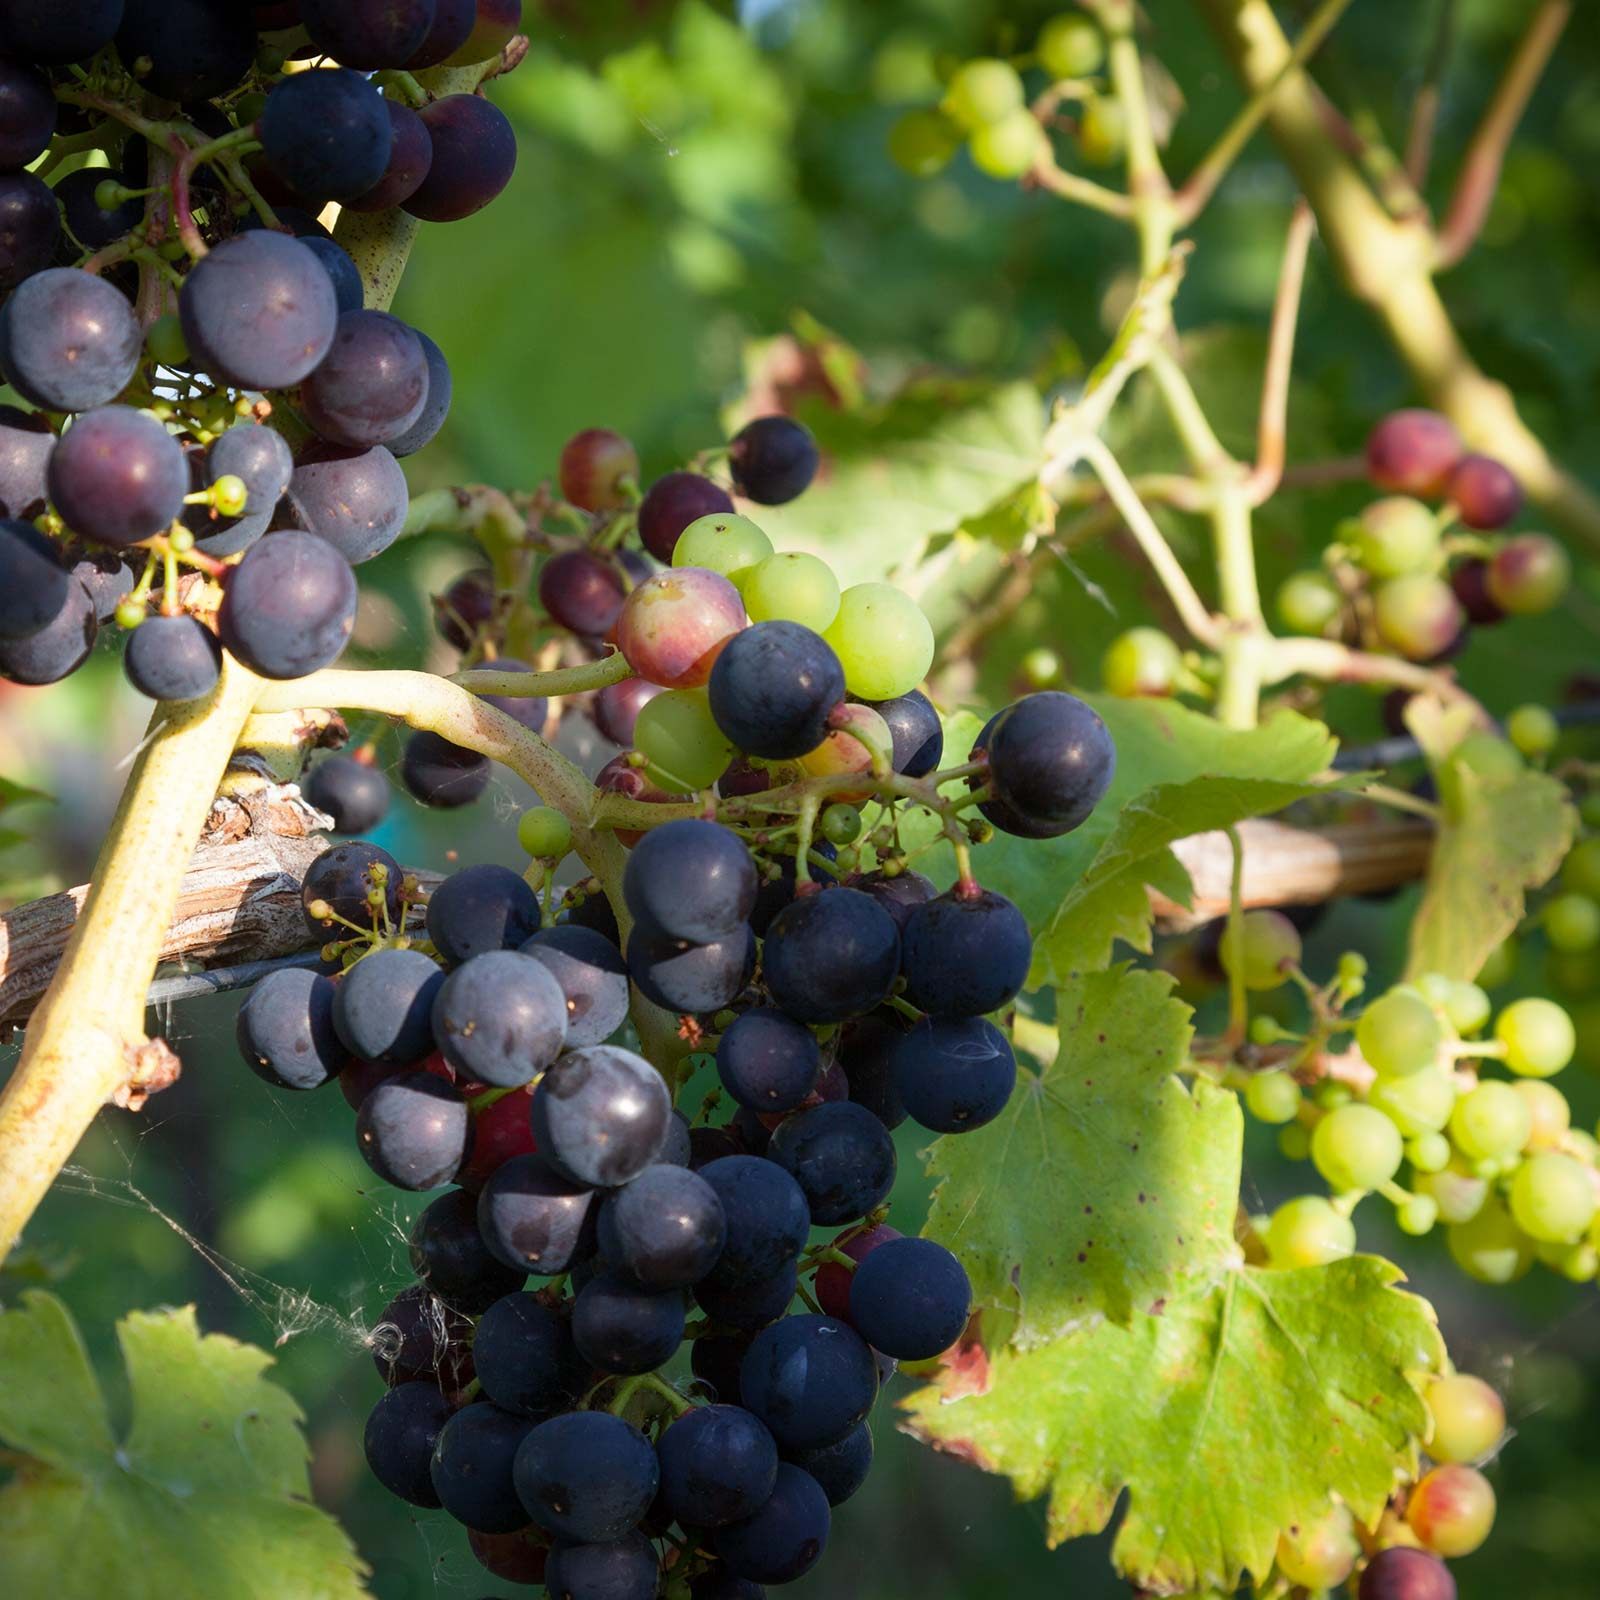 Grapes growing on vines at Brickhouse Vineyard in Devon, England.